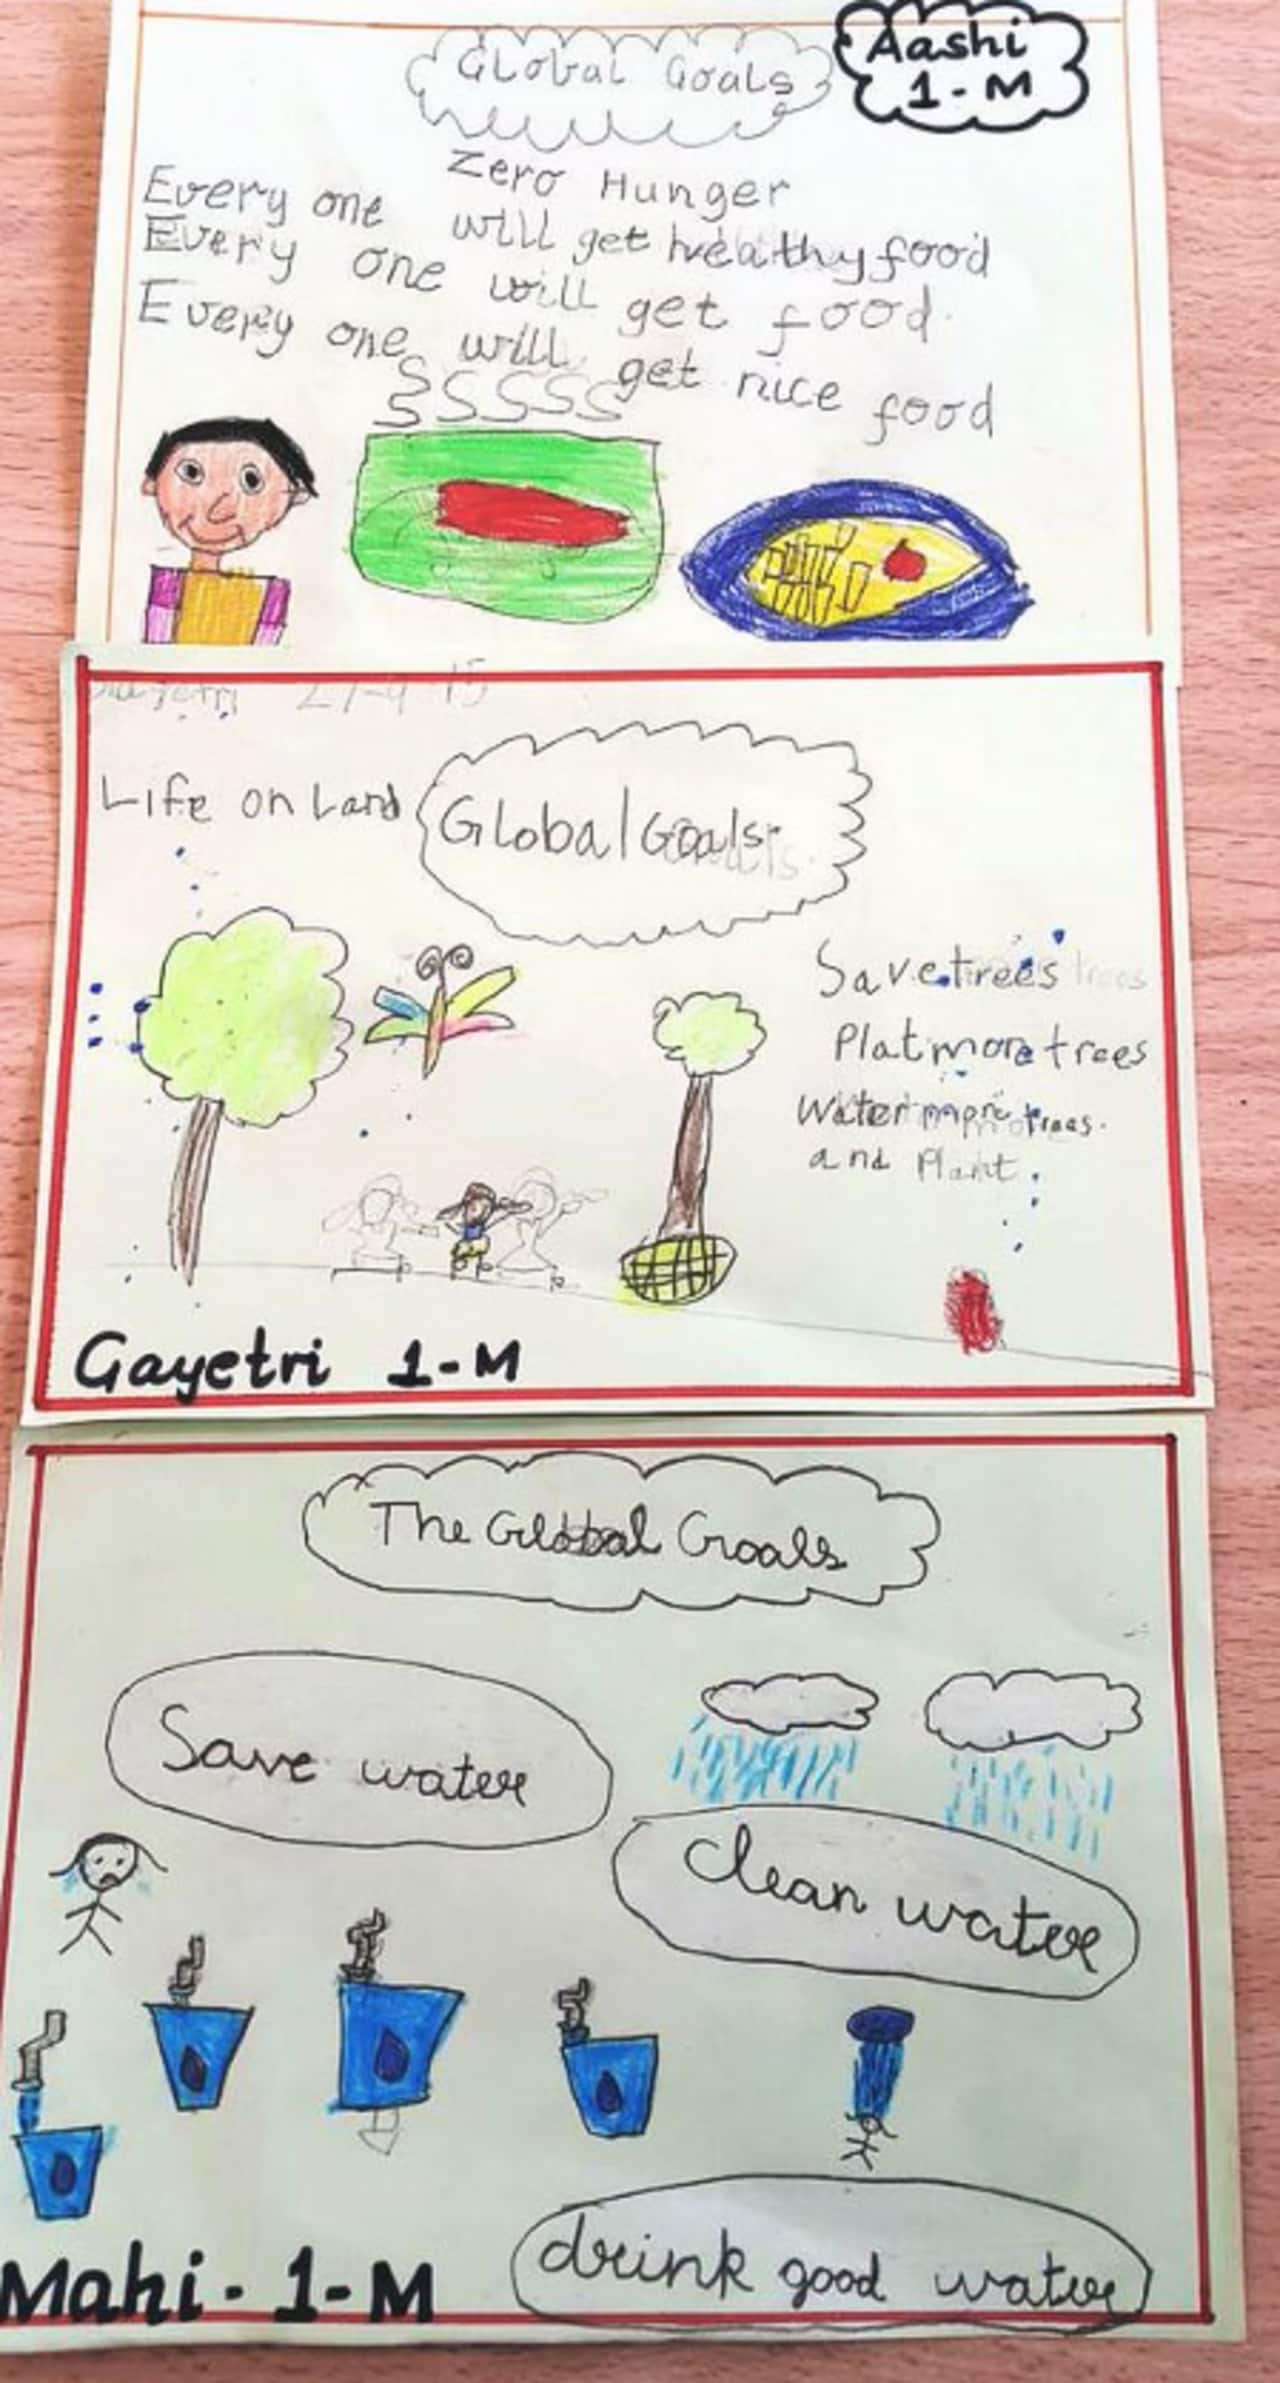 A kids drawing about The Global Goals